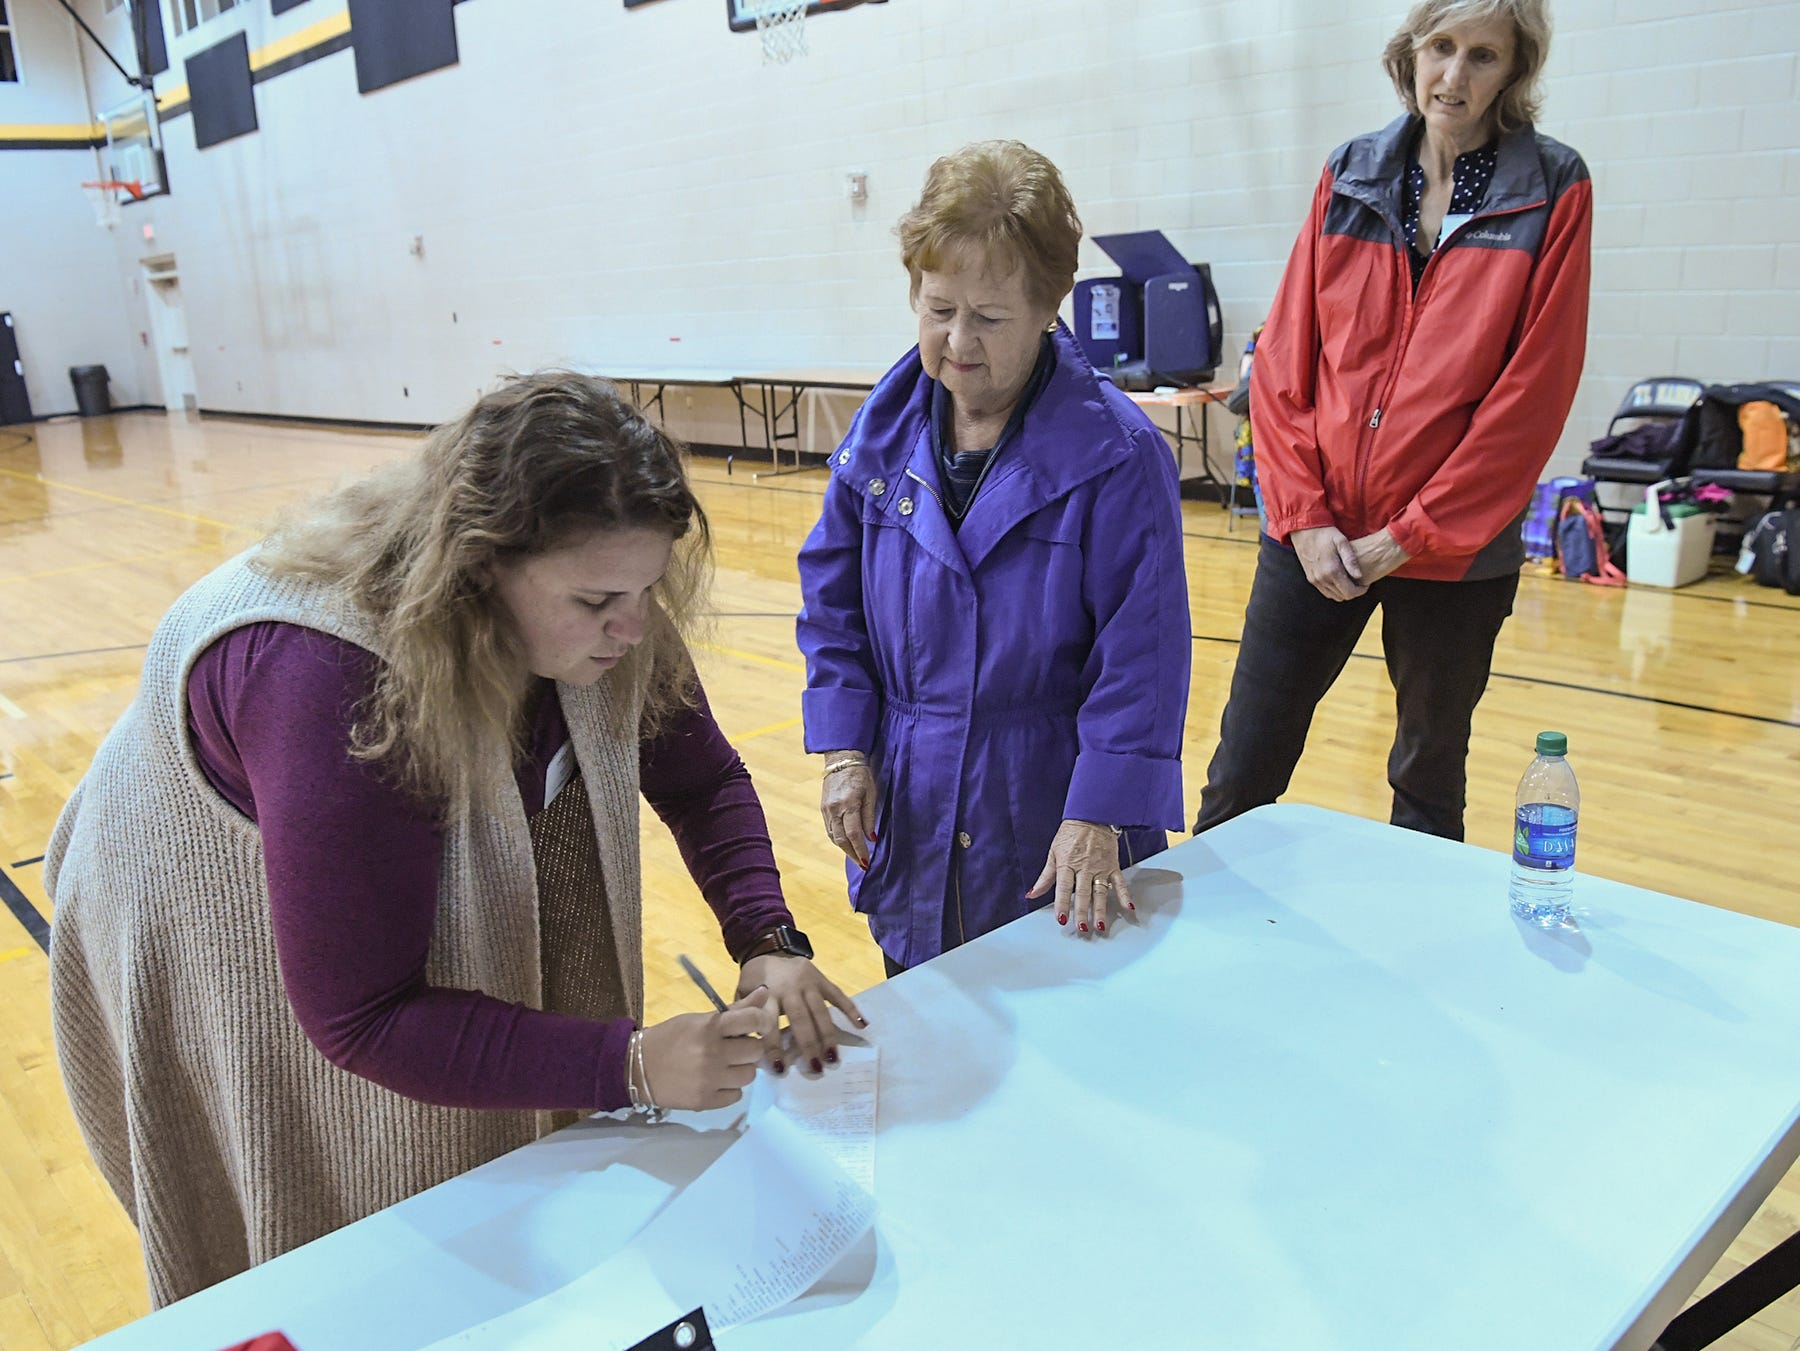 Caitlin Phillips, a poll clerk at Hopewell precinct at T.L. Hanna High School, signs off totals printed out after 7 p.m. in Anderson on Tuesday, November 6, 2018.